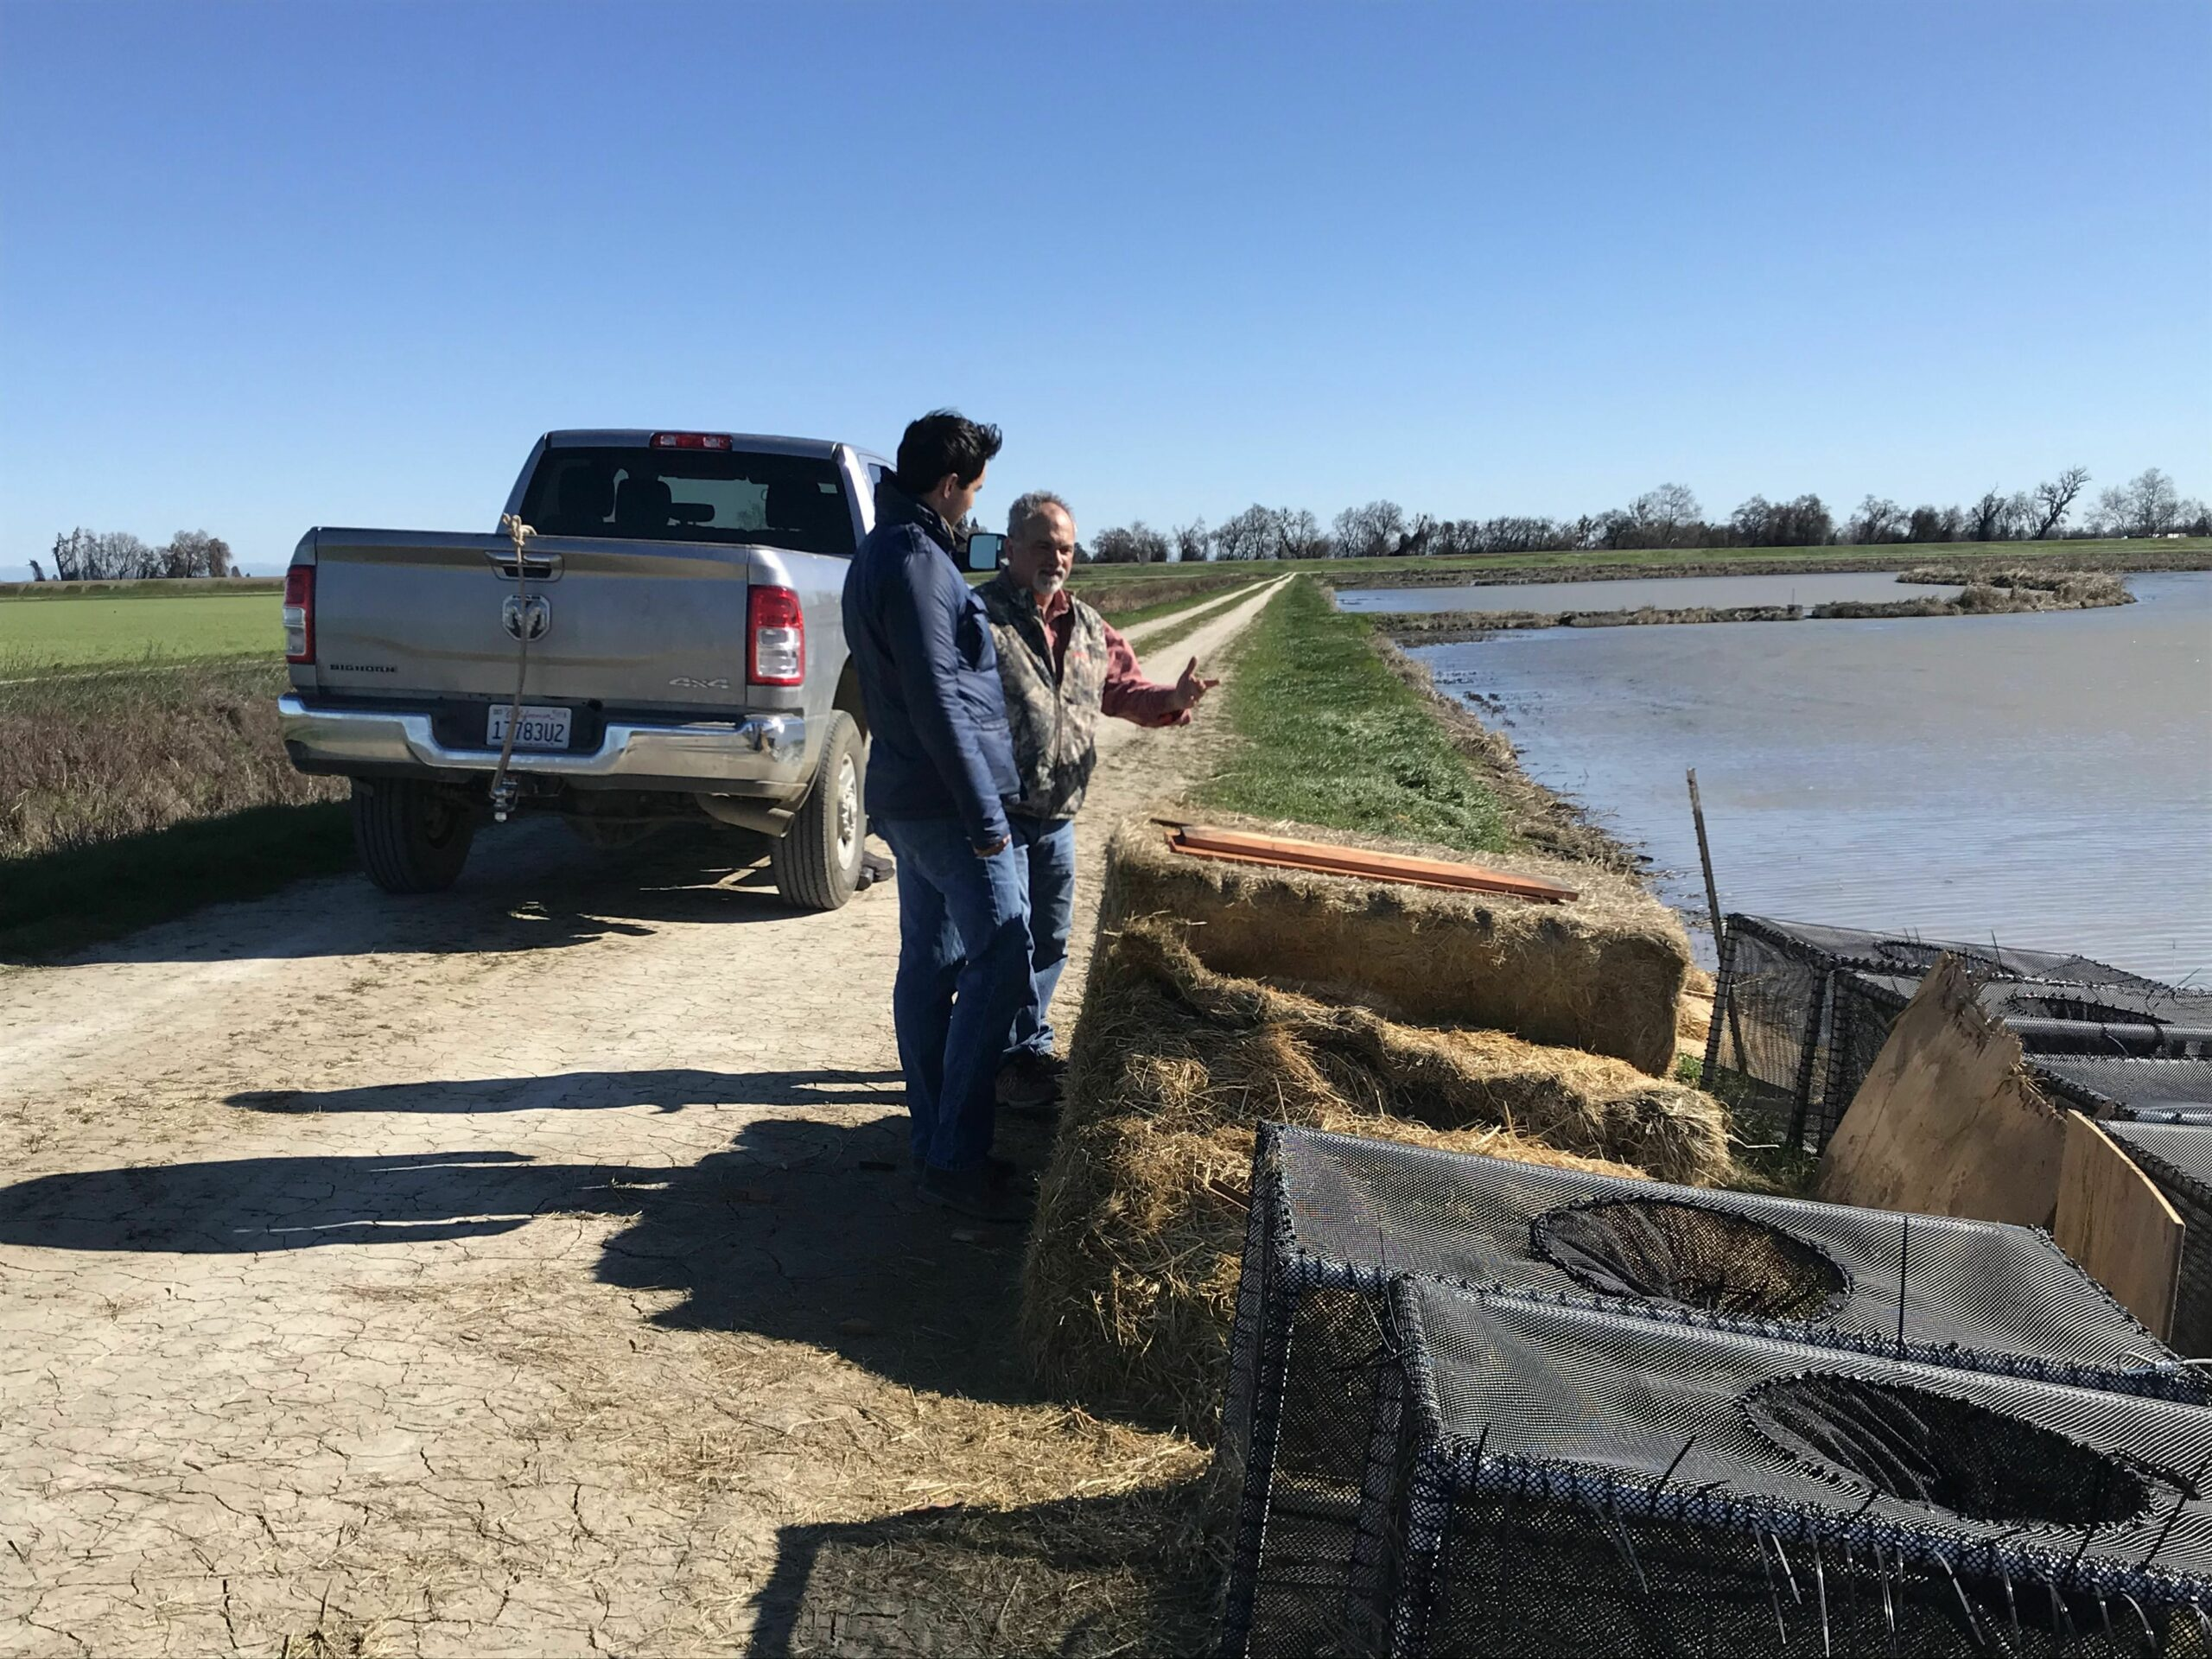 Ben Sacher, State Affairs Manager for Syngenta Crop Protection. LLC, discussing the fish cage design with Paul Buttner, CRC's Salmon Pilot Project Manager.